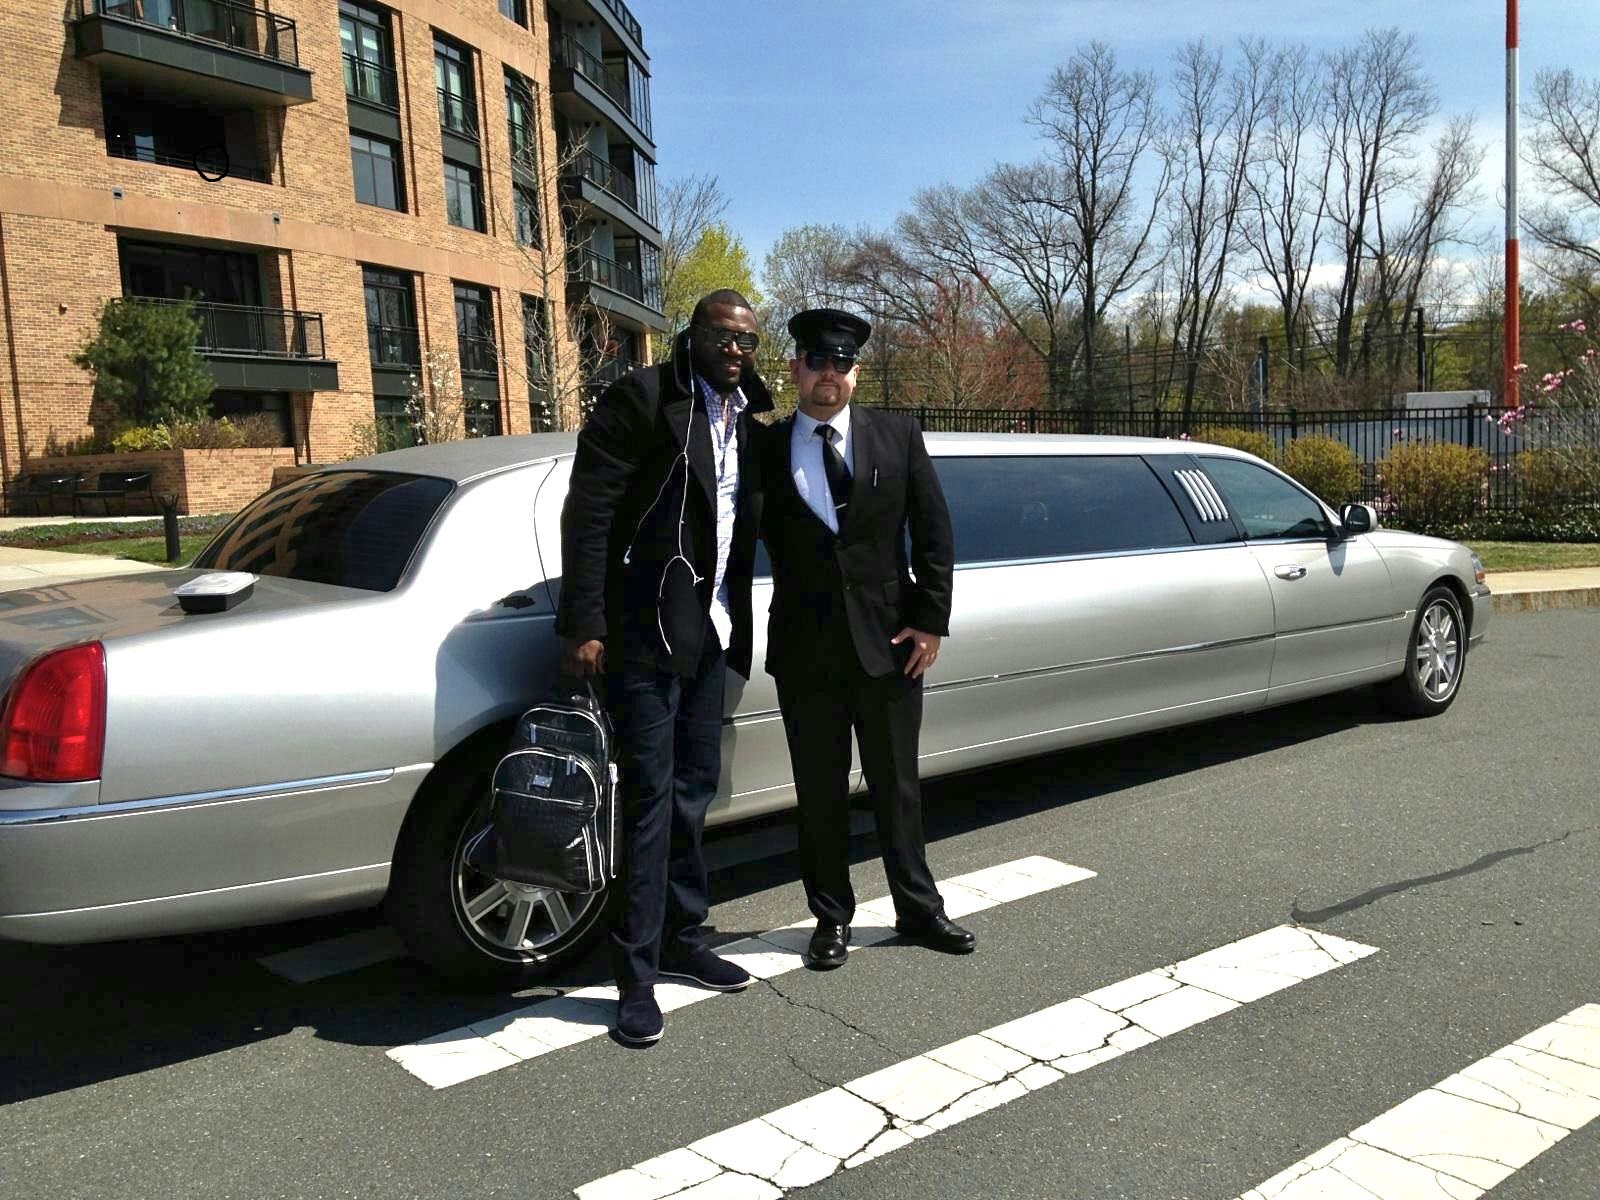 Limos for Rent Hubbardston Ma 01452